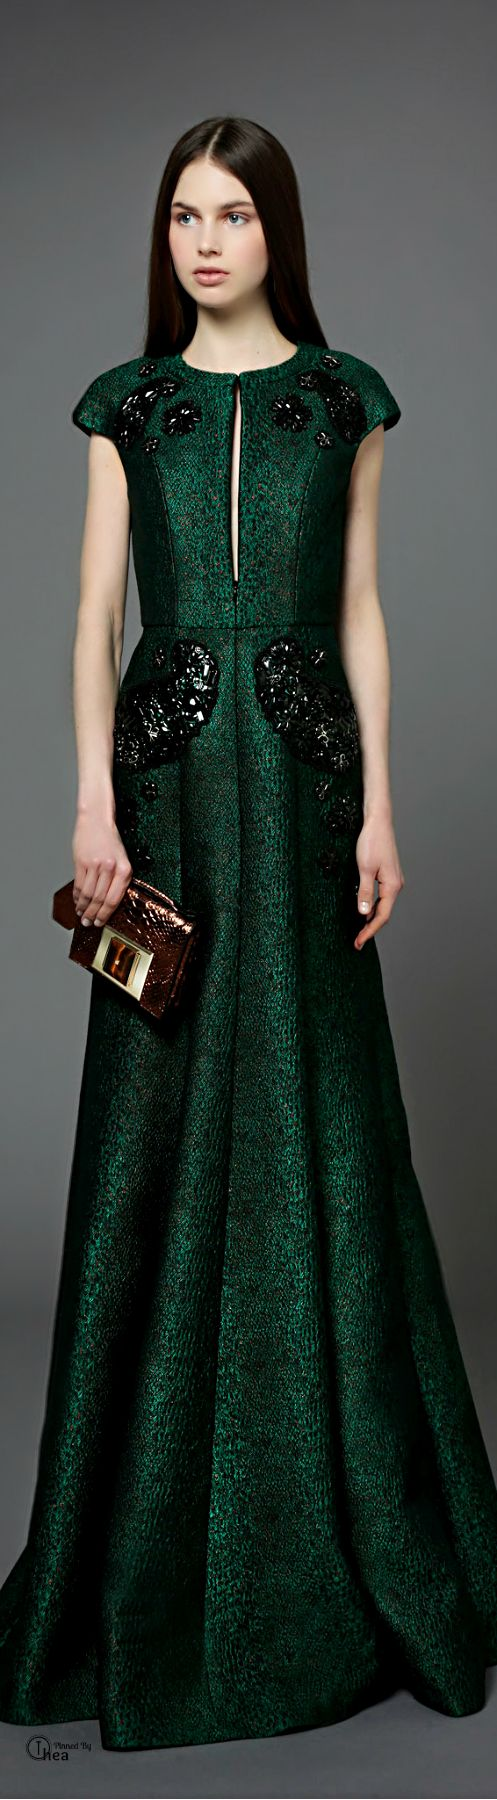 Andrew Gn ● Pre-Fall 2014   Such a beautifully rich green! fit to dress a queen.